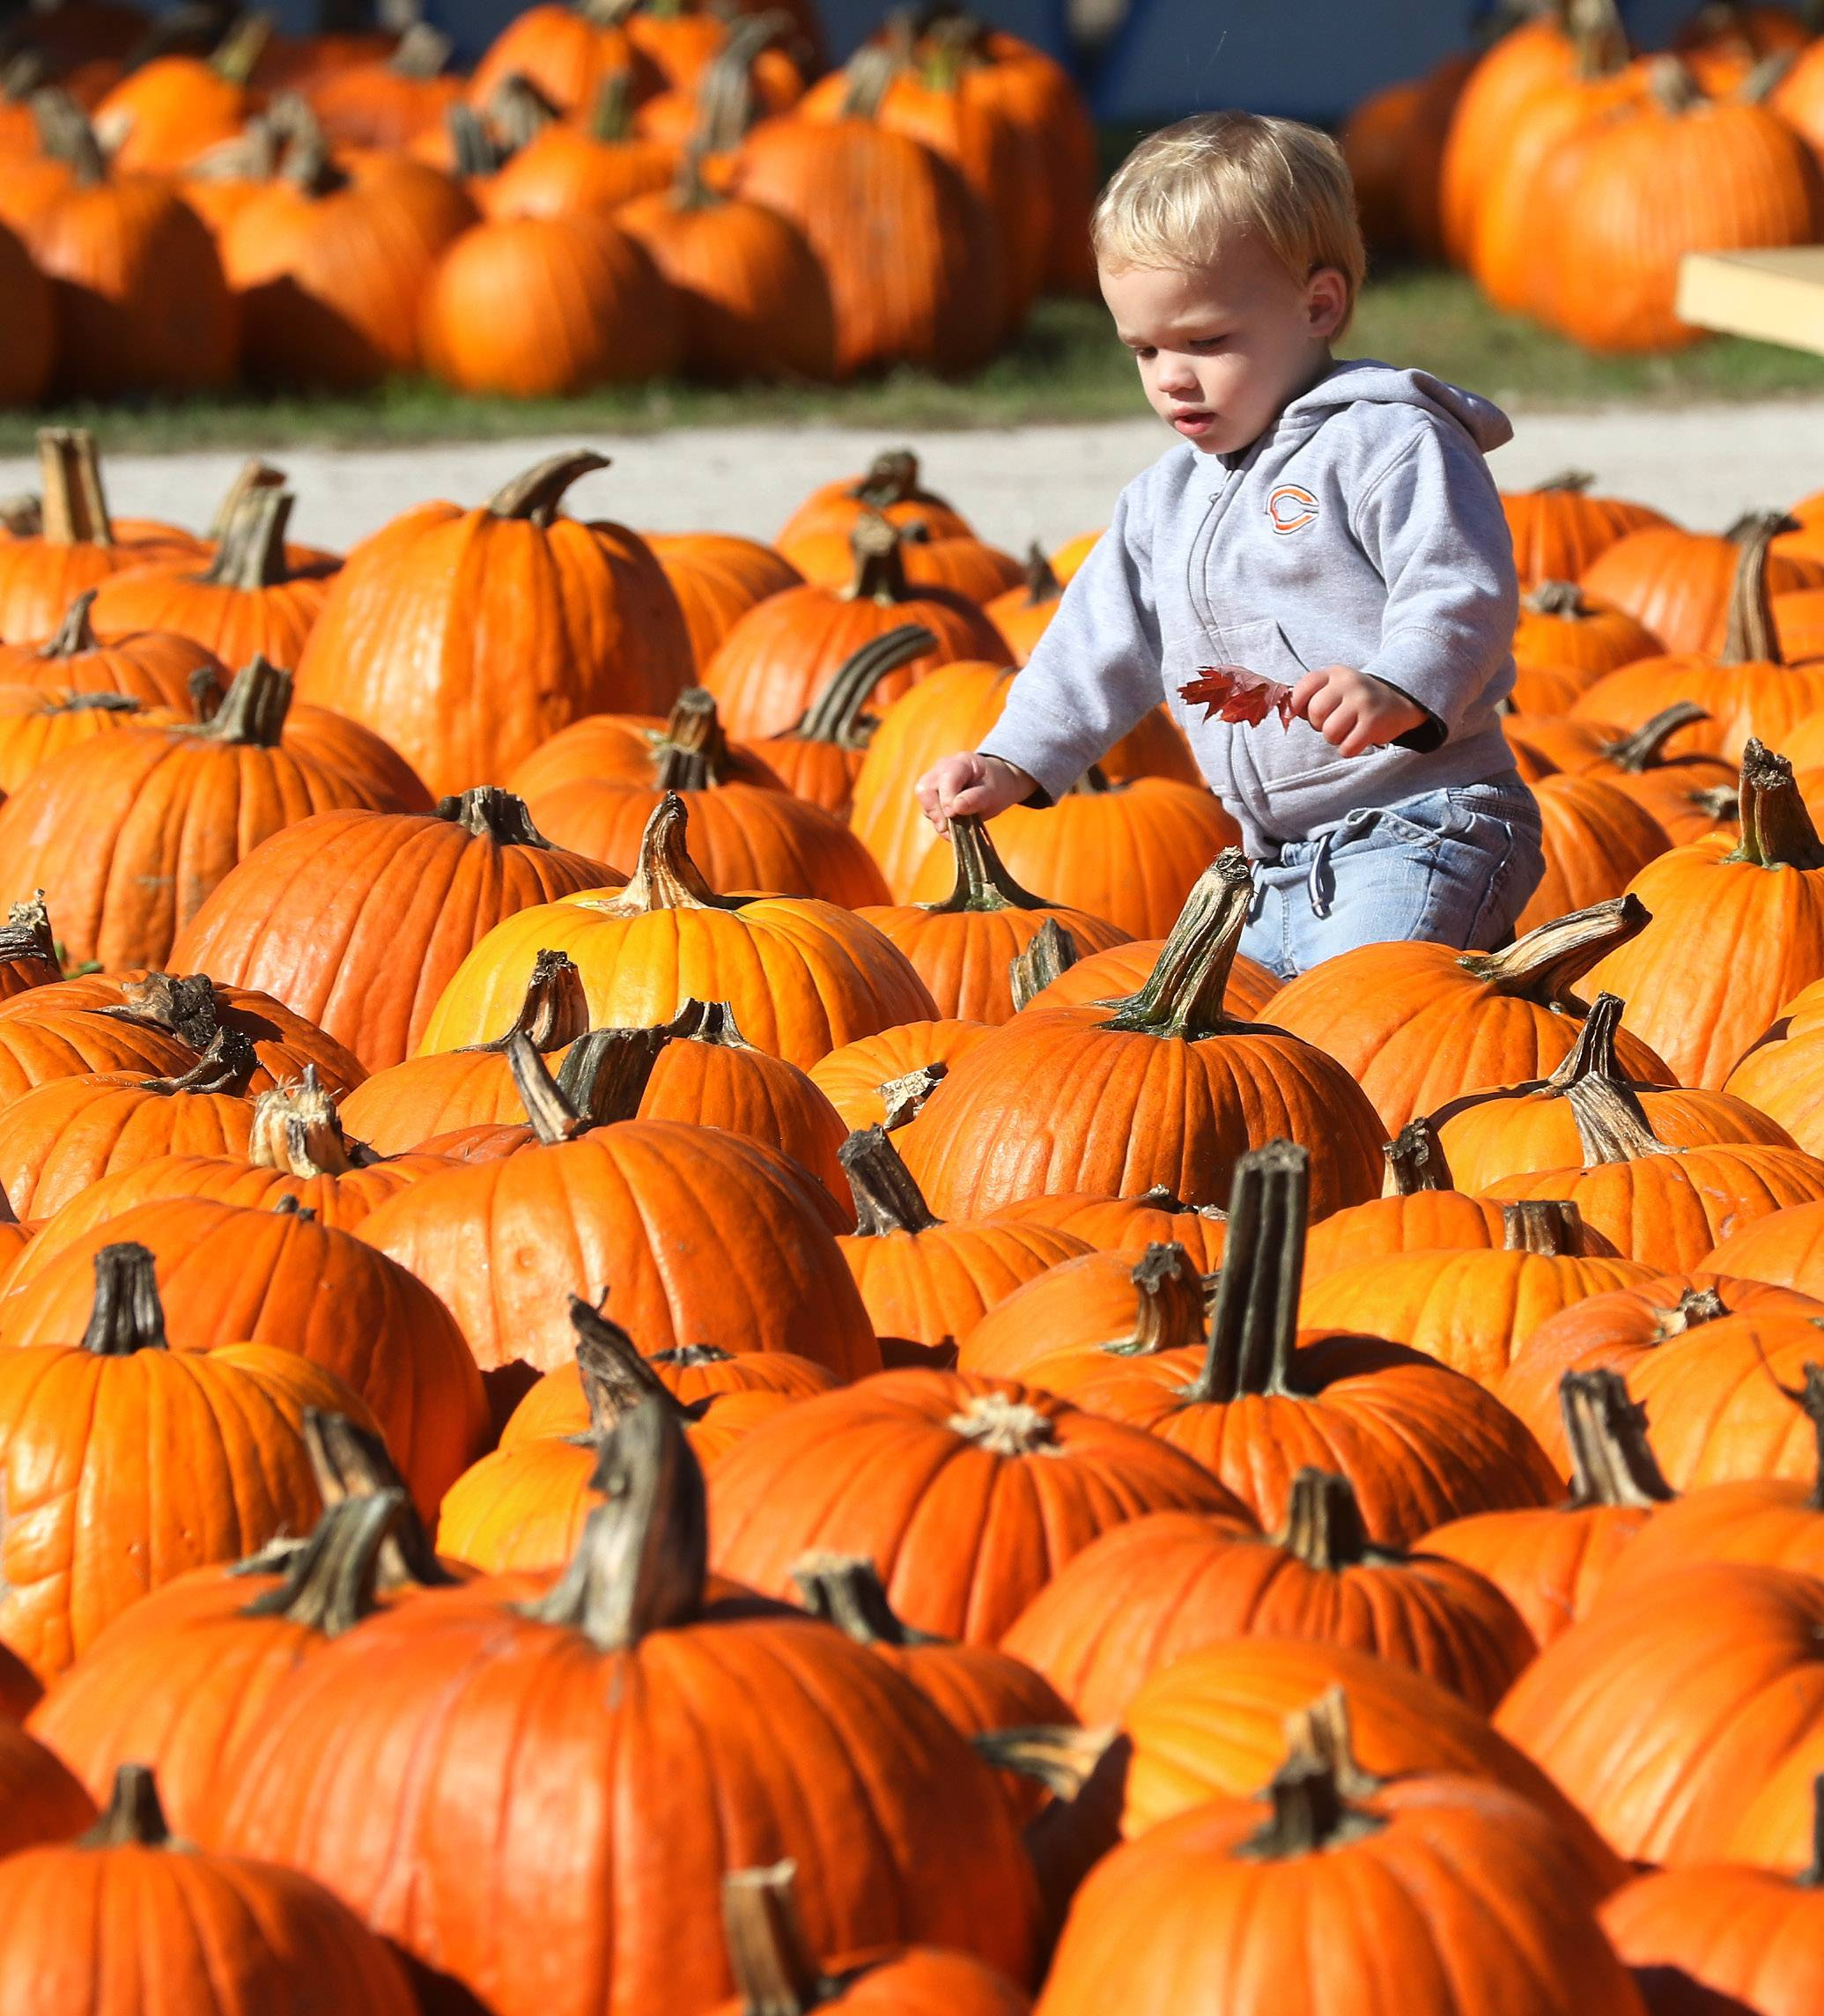 One-year-old Graham Petty of Arlington Heights walks among the pumpkins Monday during Pumpkinfest at Didier Farms in Lincolnshire. The festival runs through Oct. 30, with a corn maze, hayrides, a petting zoo, rides and lots of pumpkins.